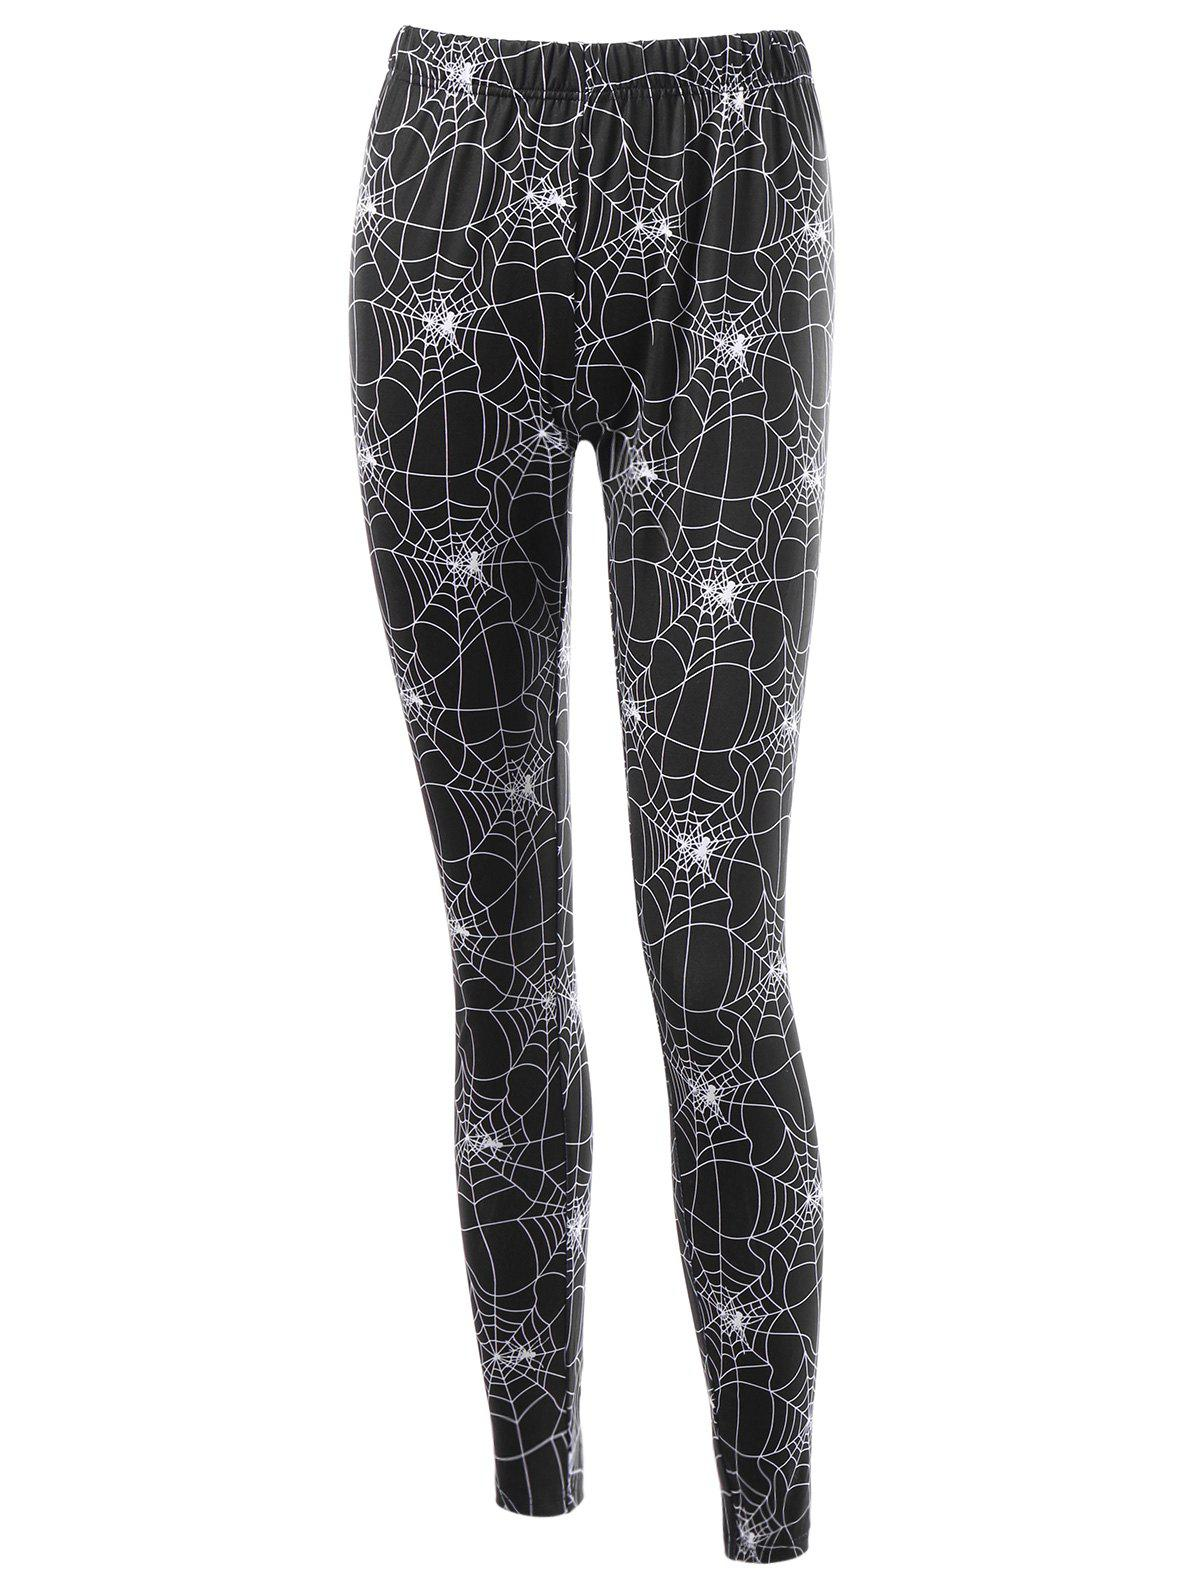 Halloween Fitted Leggings with Spider Web Print - BLACK 2XL